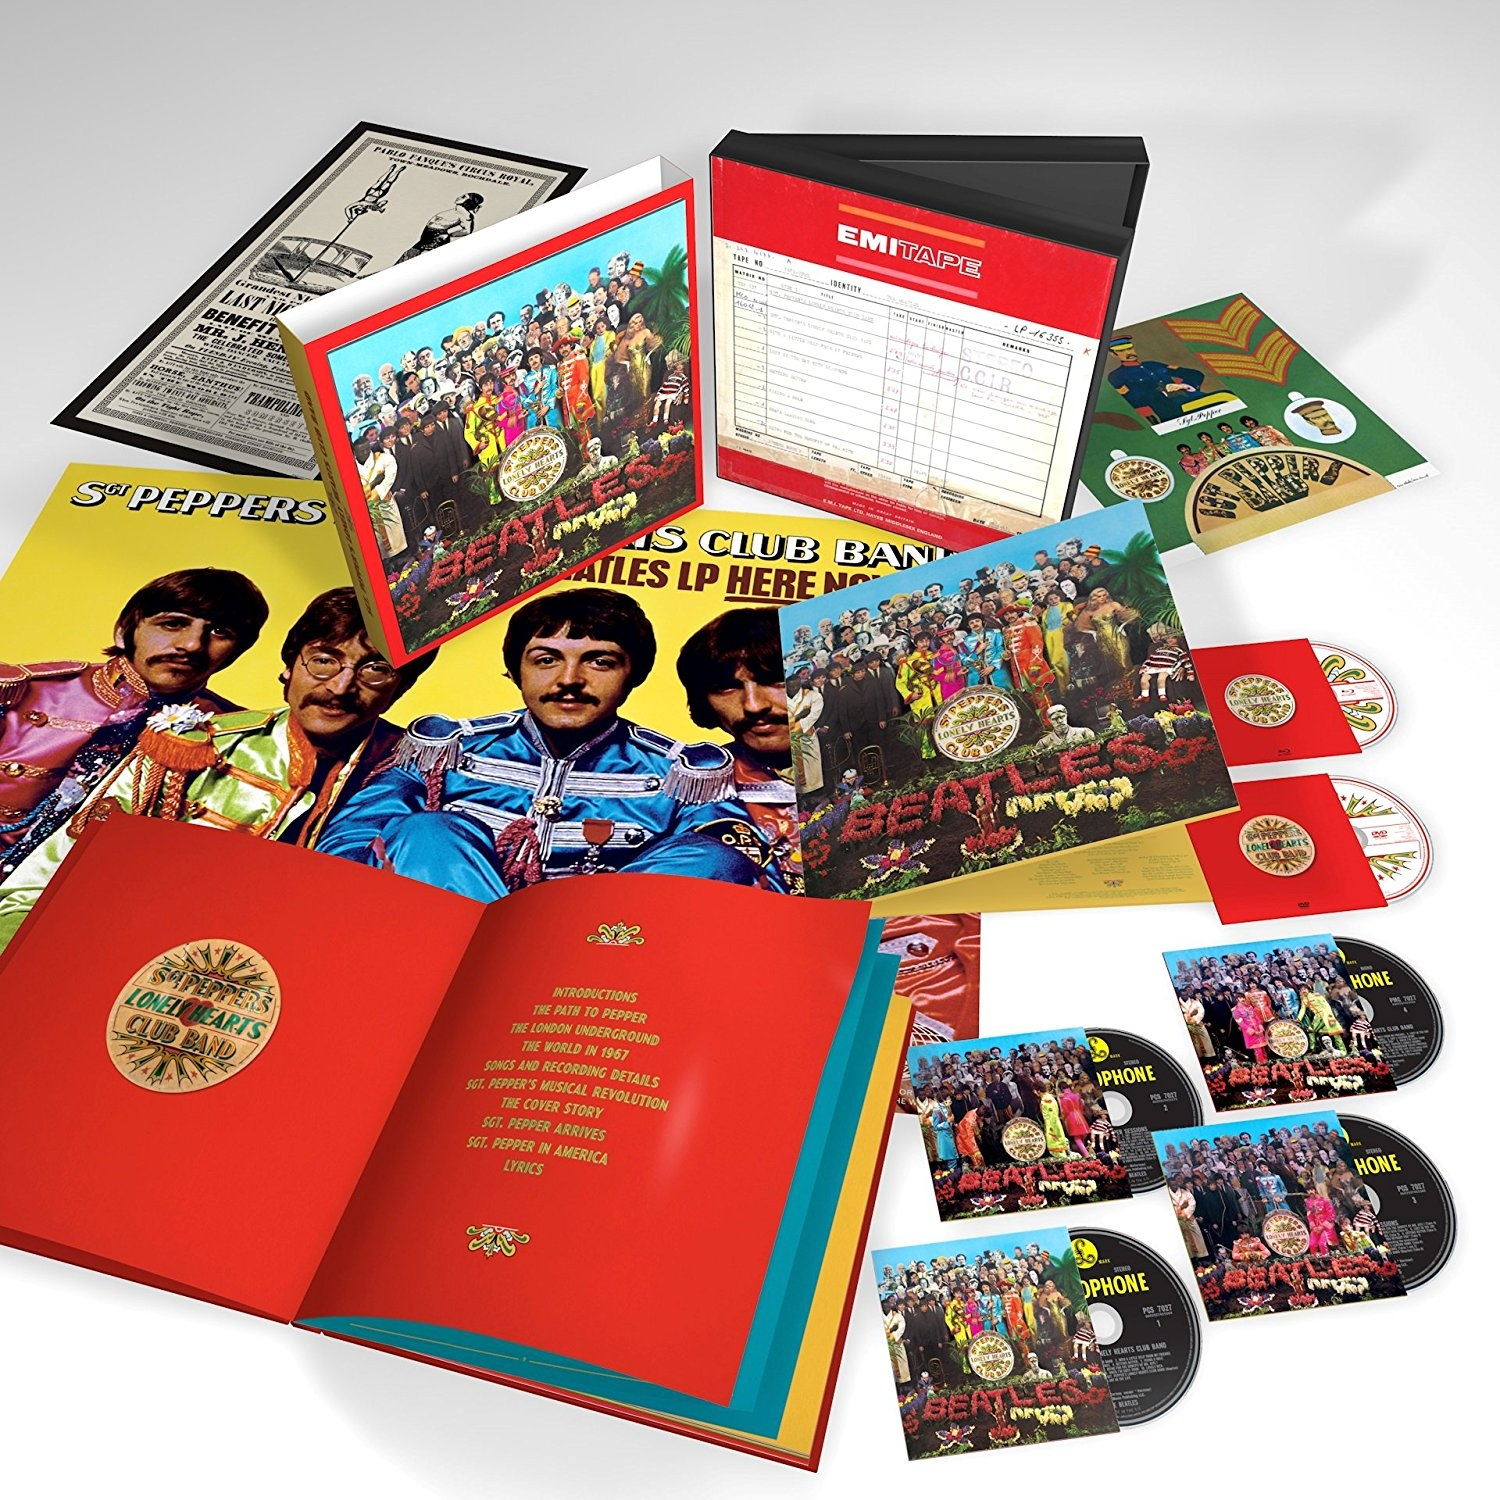 50th anniversary six-disc super deluxe edition offers stereo remix, two CDs of sessions, mono mix, 5.1 mix and more!!